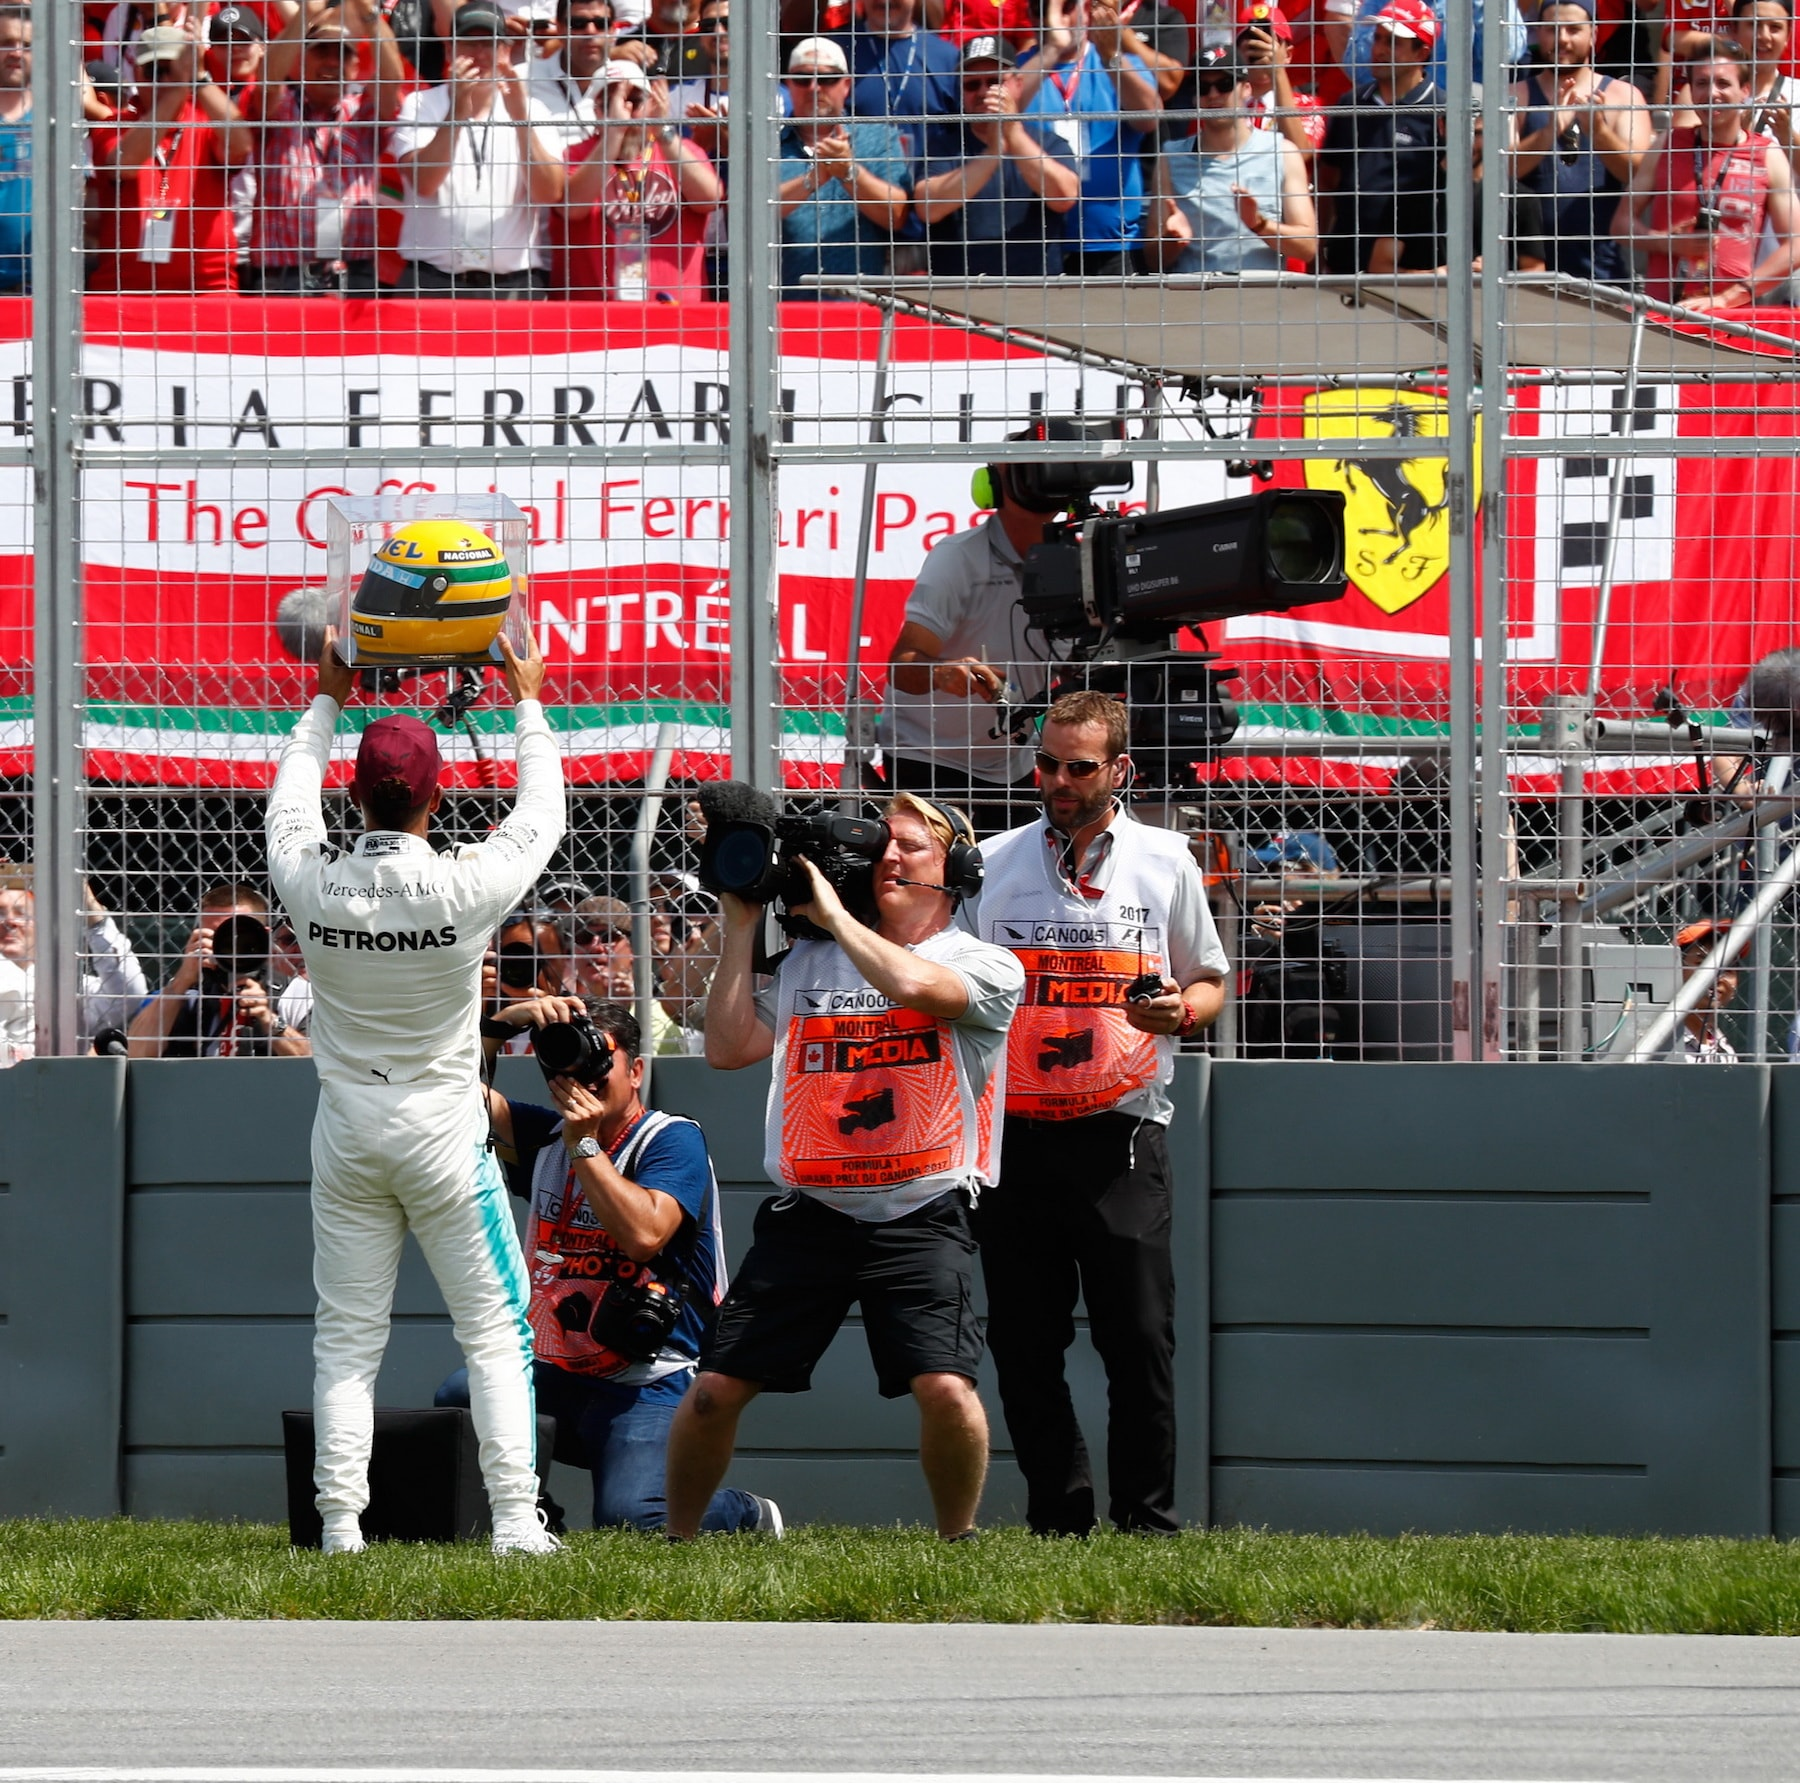 2017 Lewis Hamilton with Ayrton Senna helmet from 1987 gifted by Senna family for equalling 65th poles in F1 1 copy.JPG